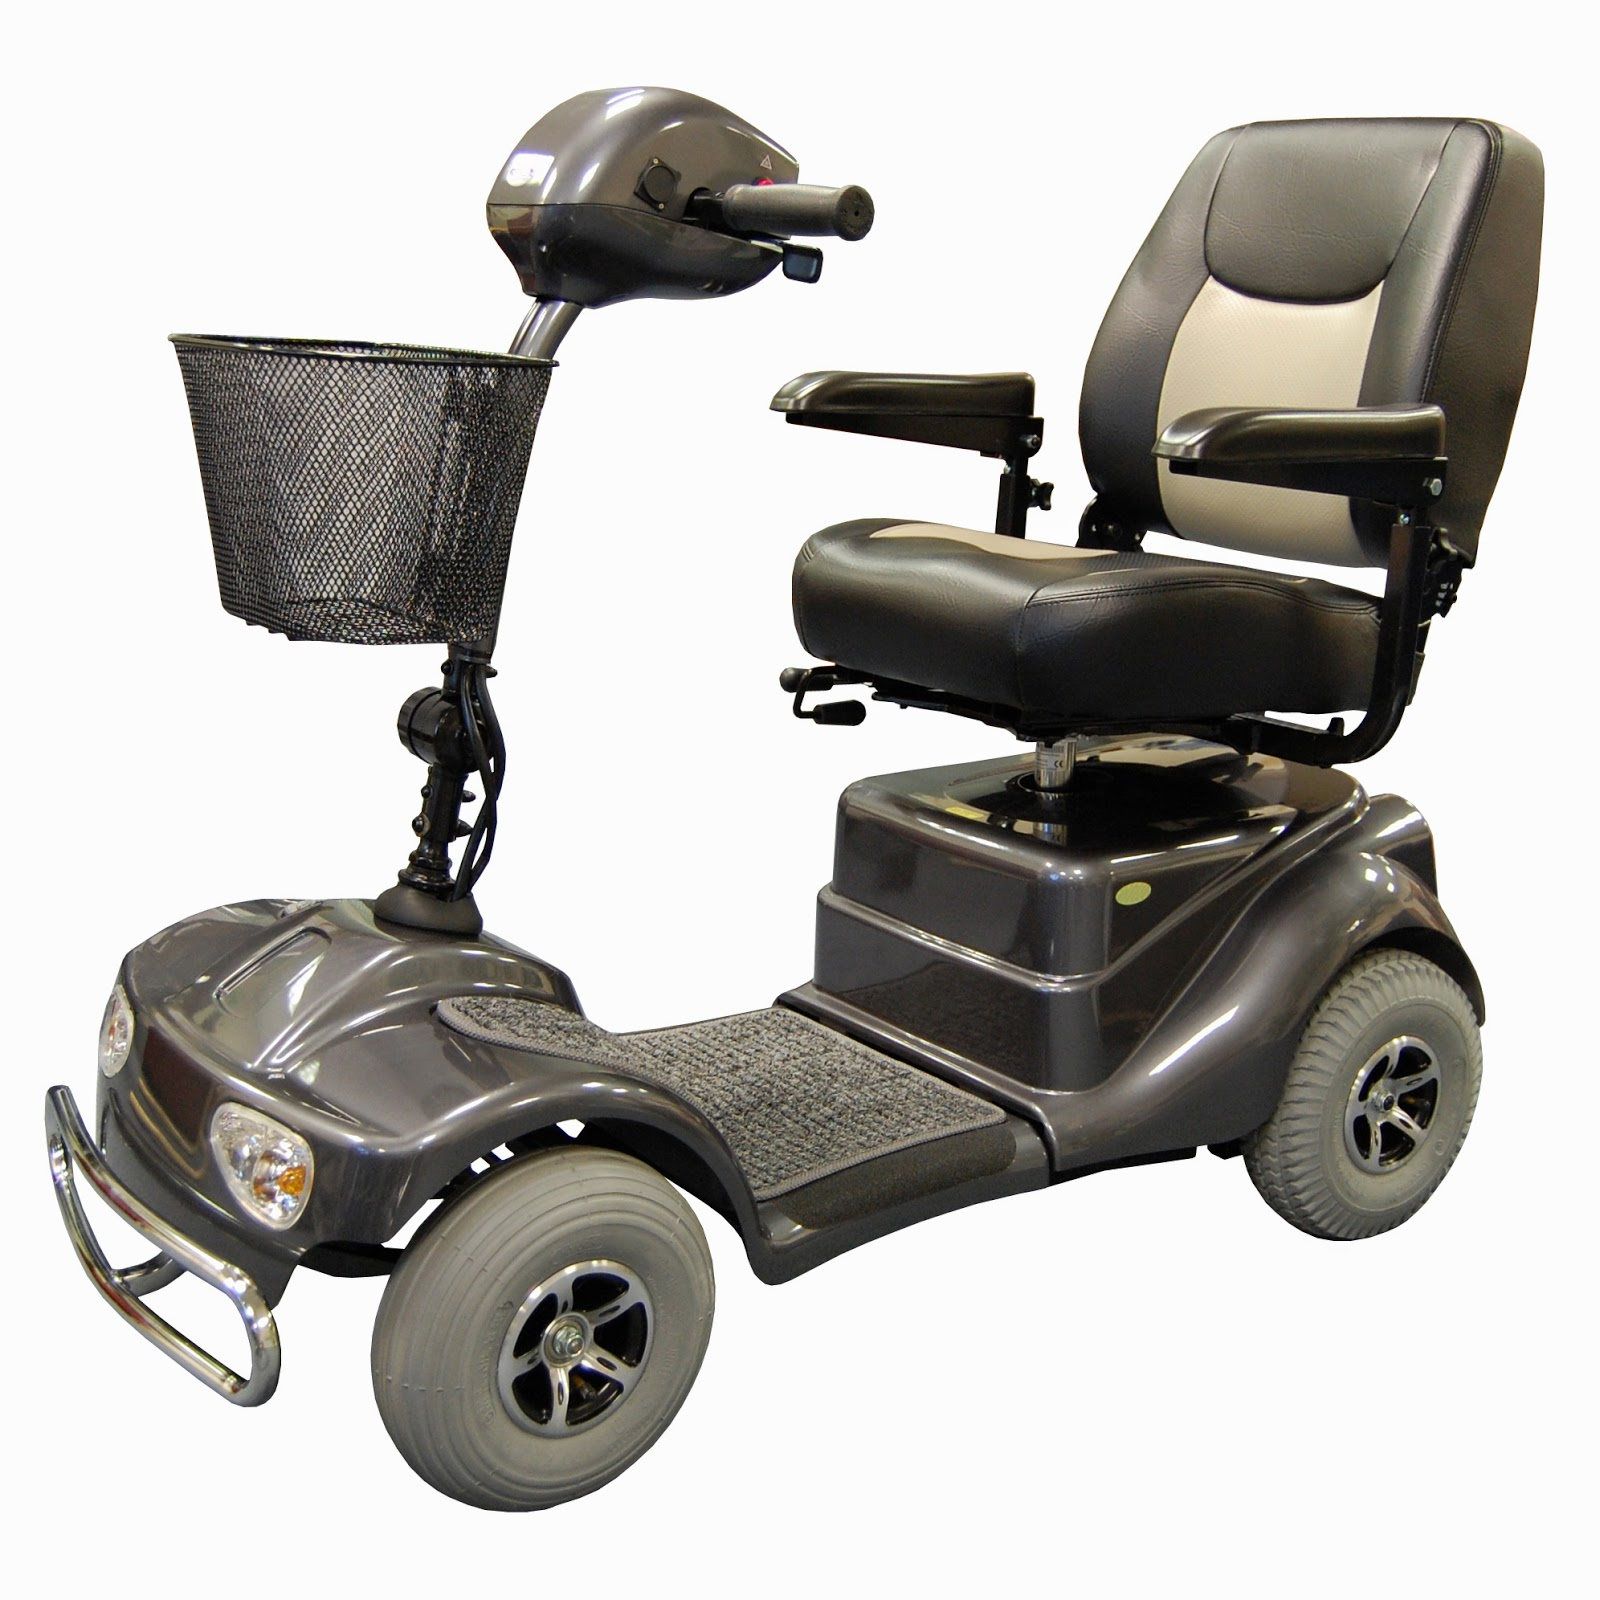 mobility scooter grey 4-wheels